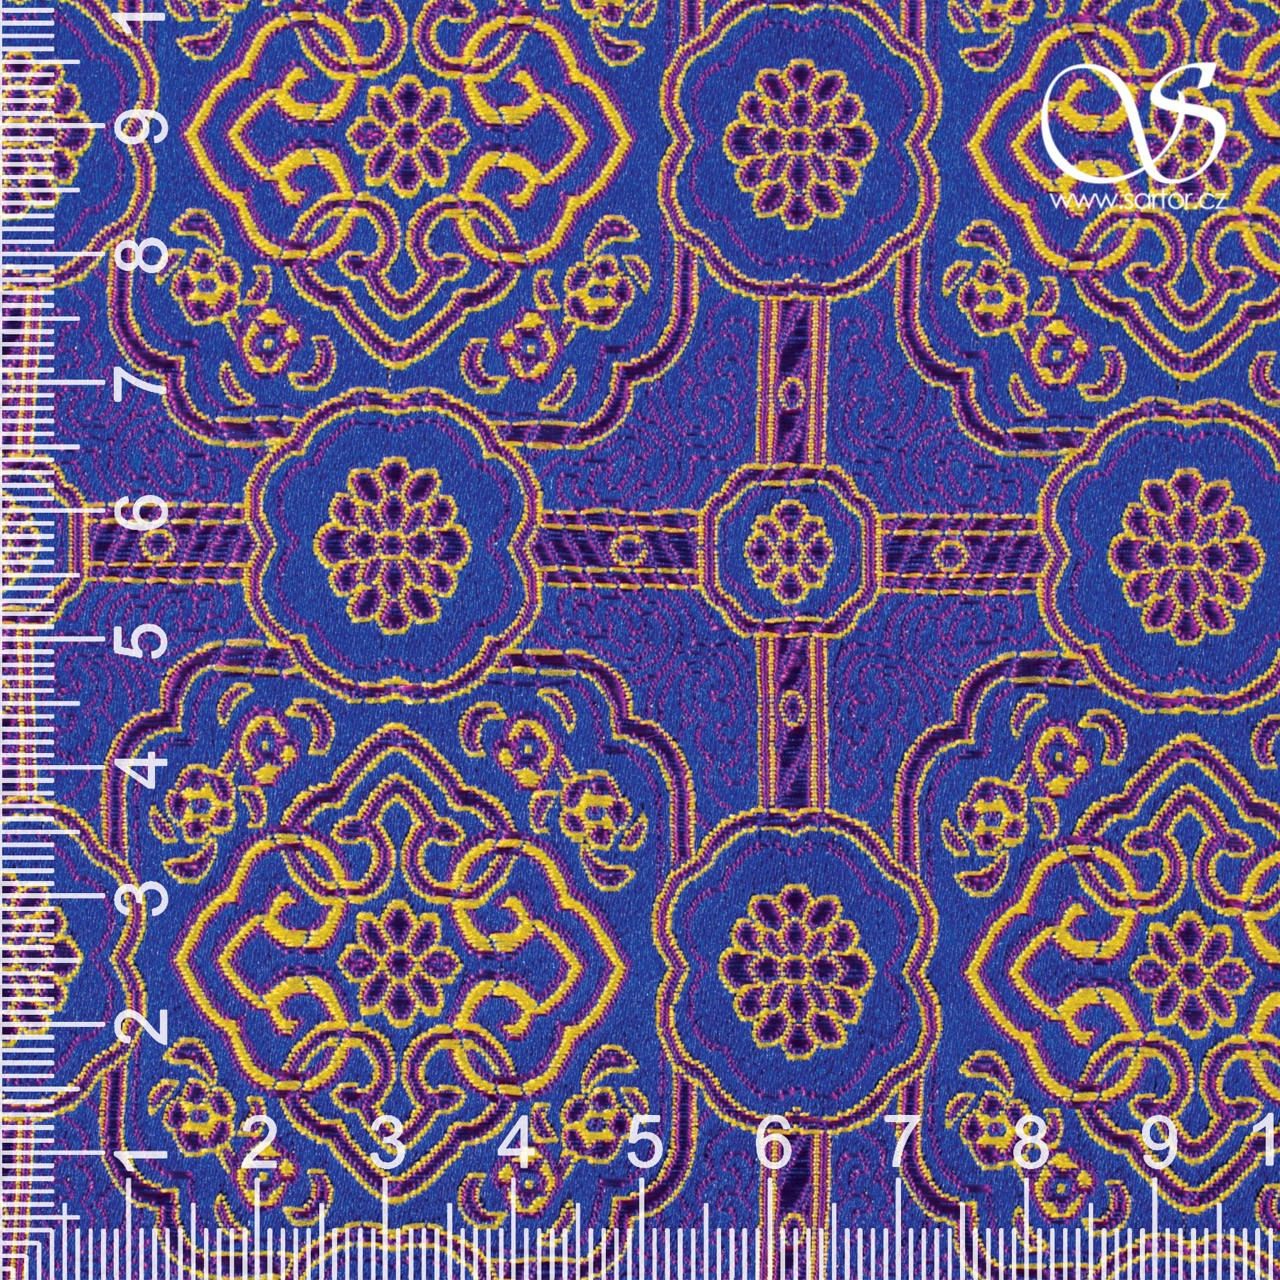 Oriental Brocade, Blue and Violet